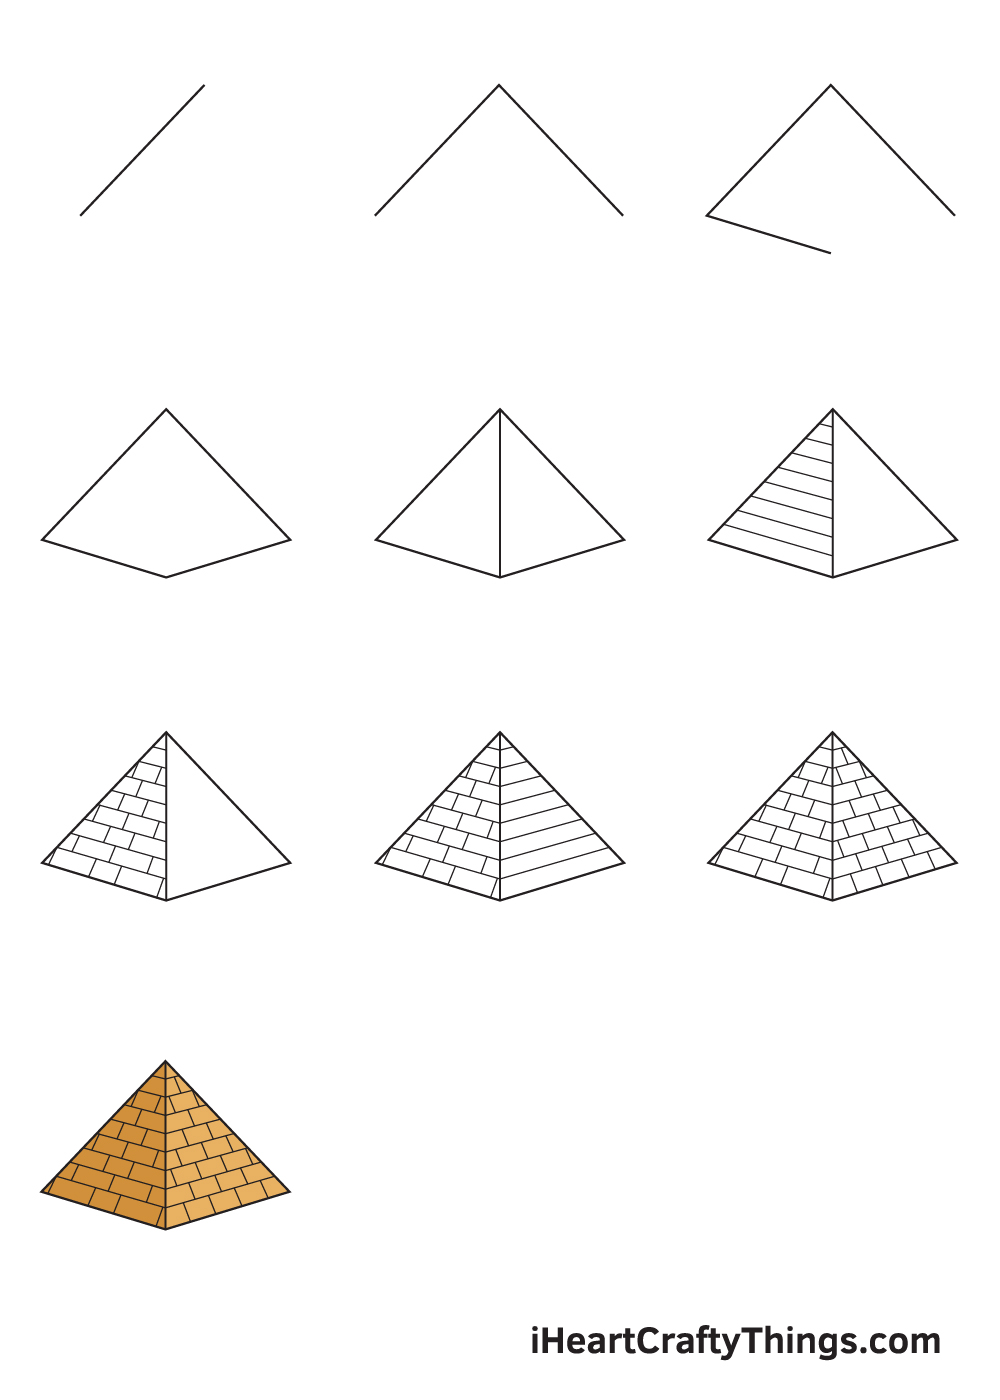 drawing pyramid in 9 steps